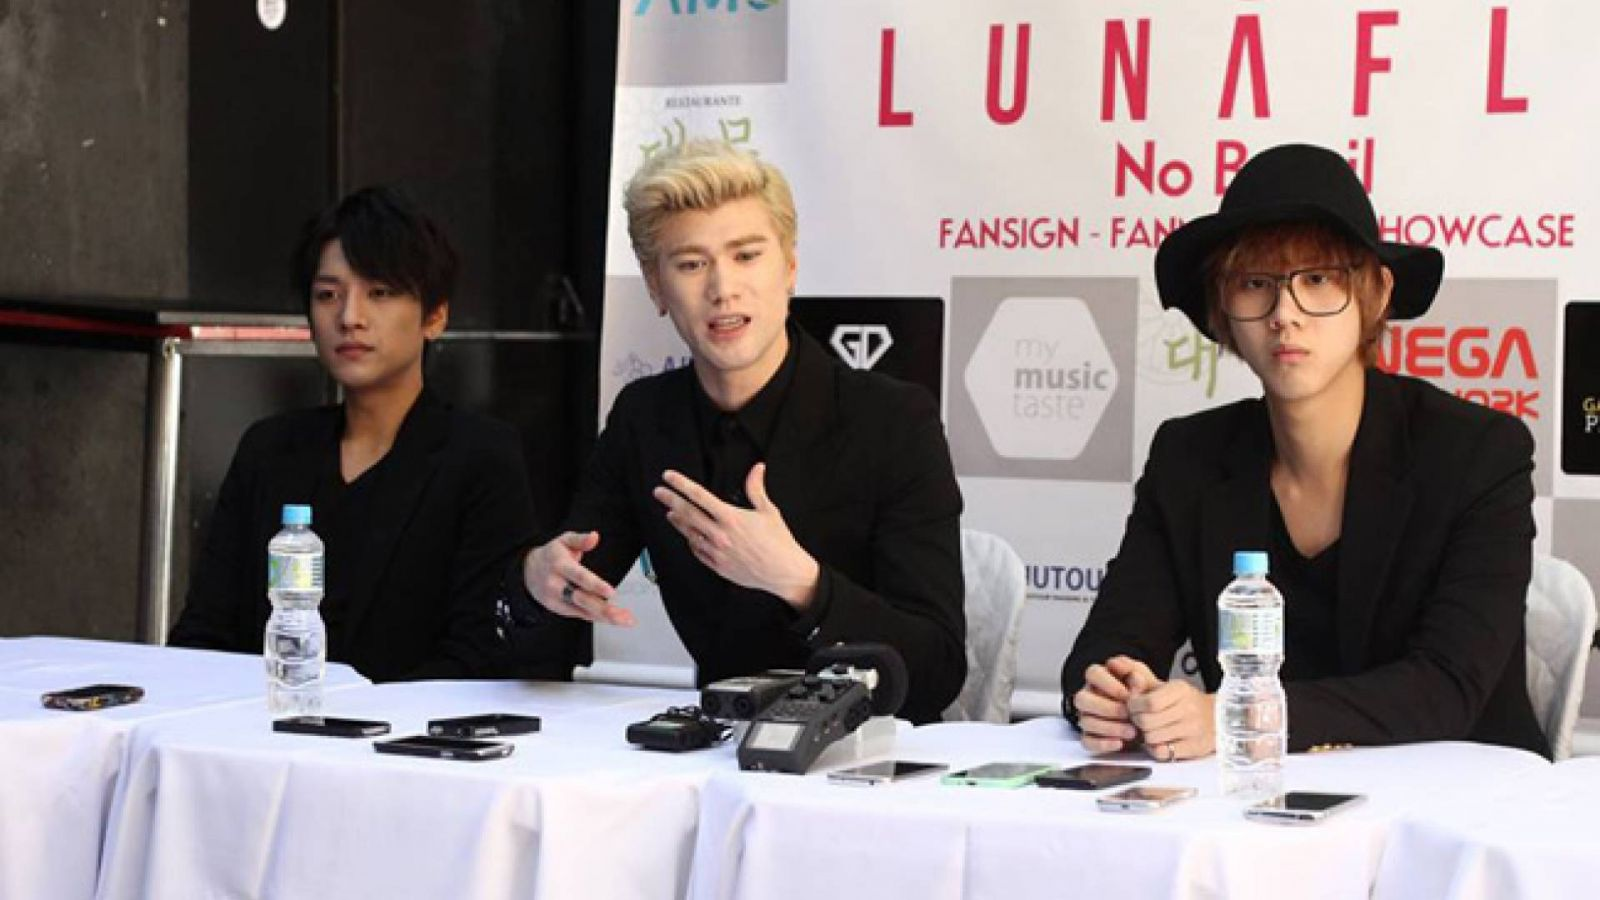 Press conference with LUNAFLY in Sao Paolo © Dennis Himura